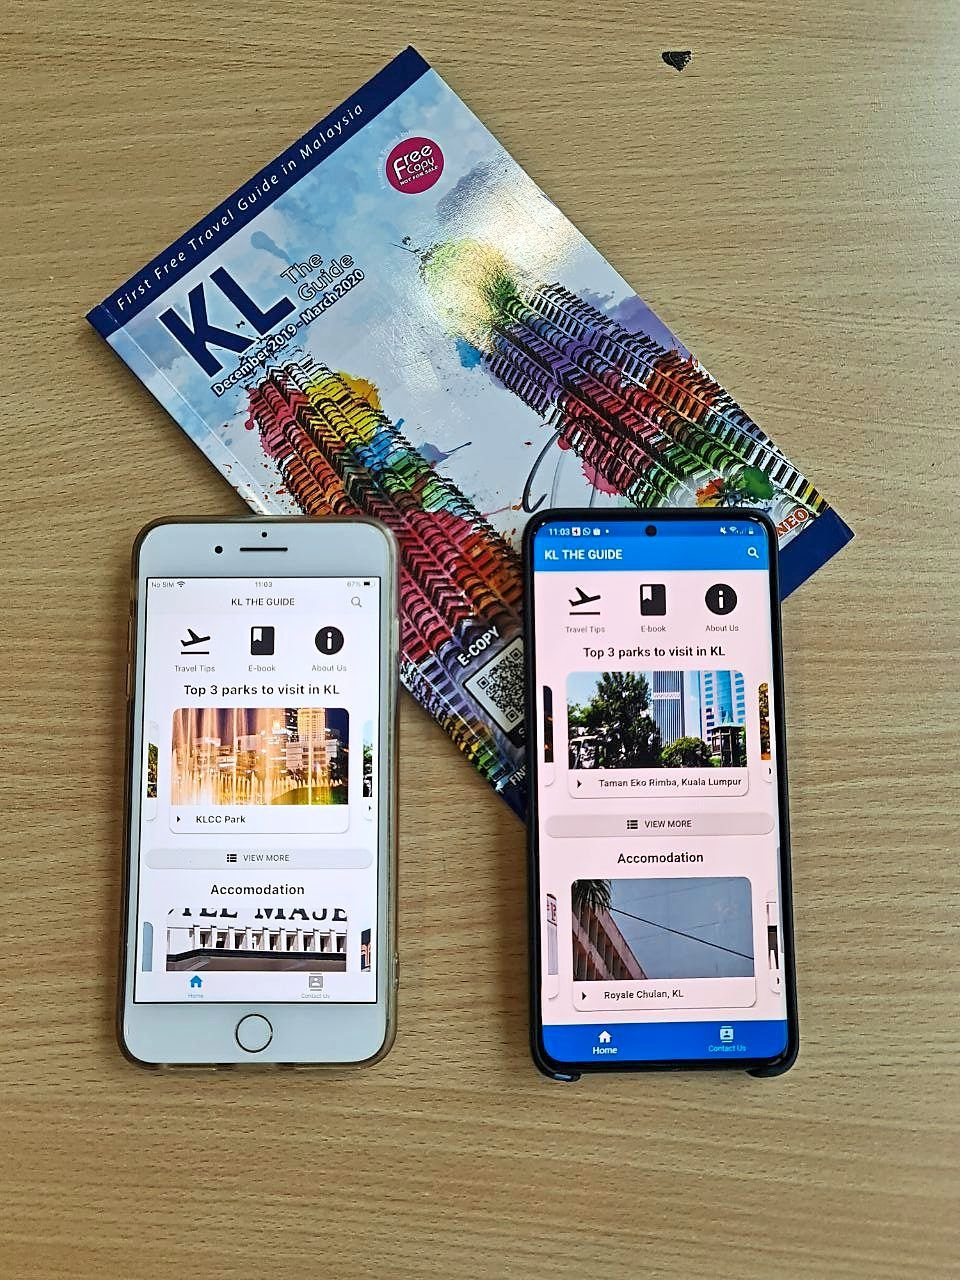 Bluedale's guide books have also been turned into mobile apps.